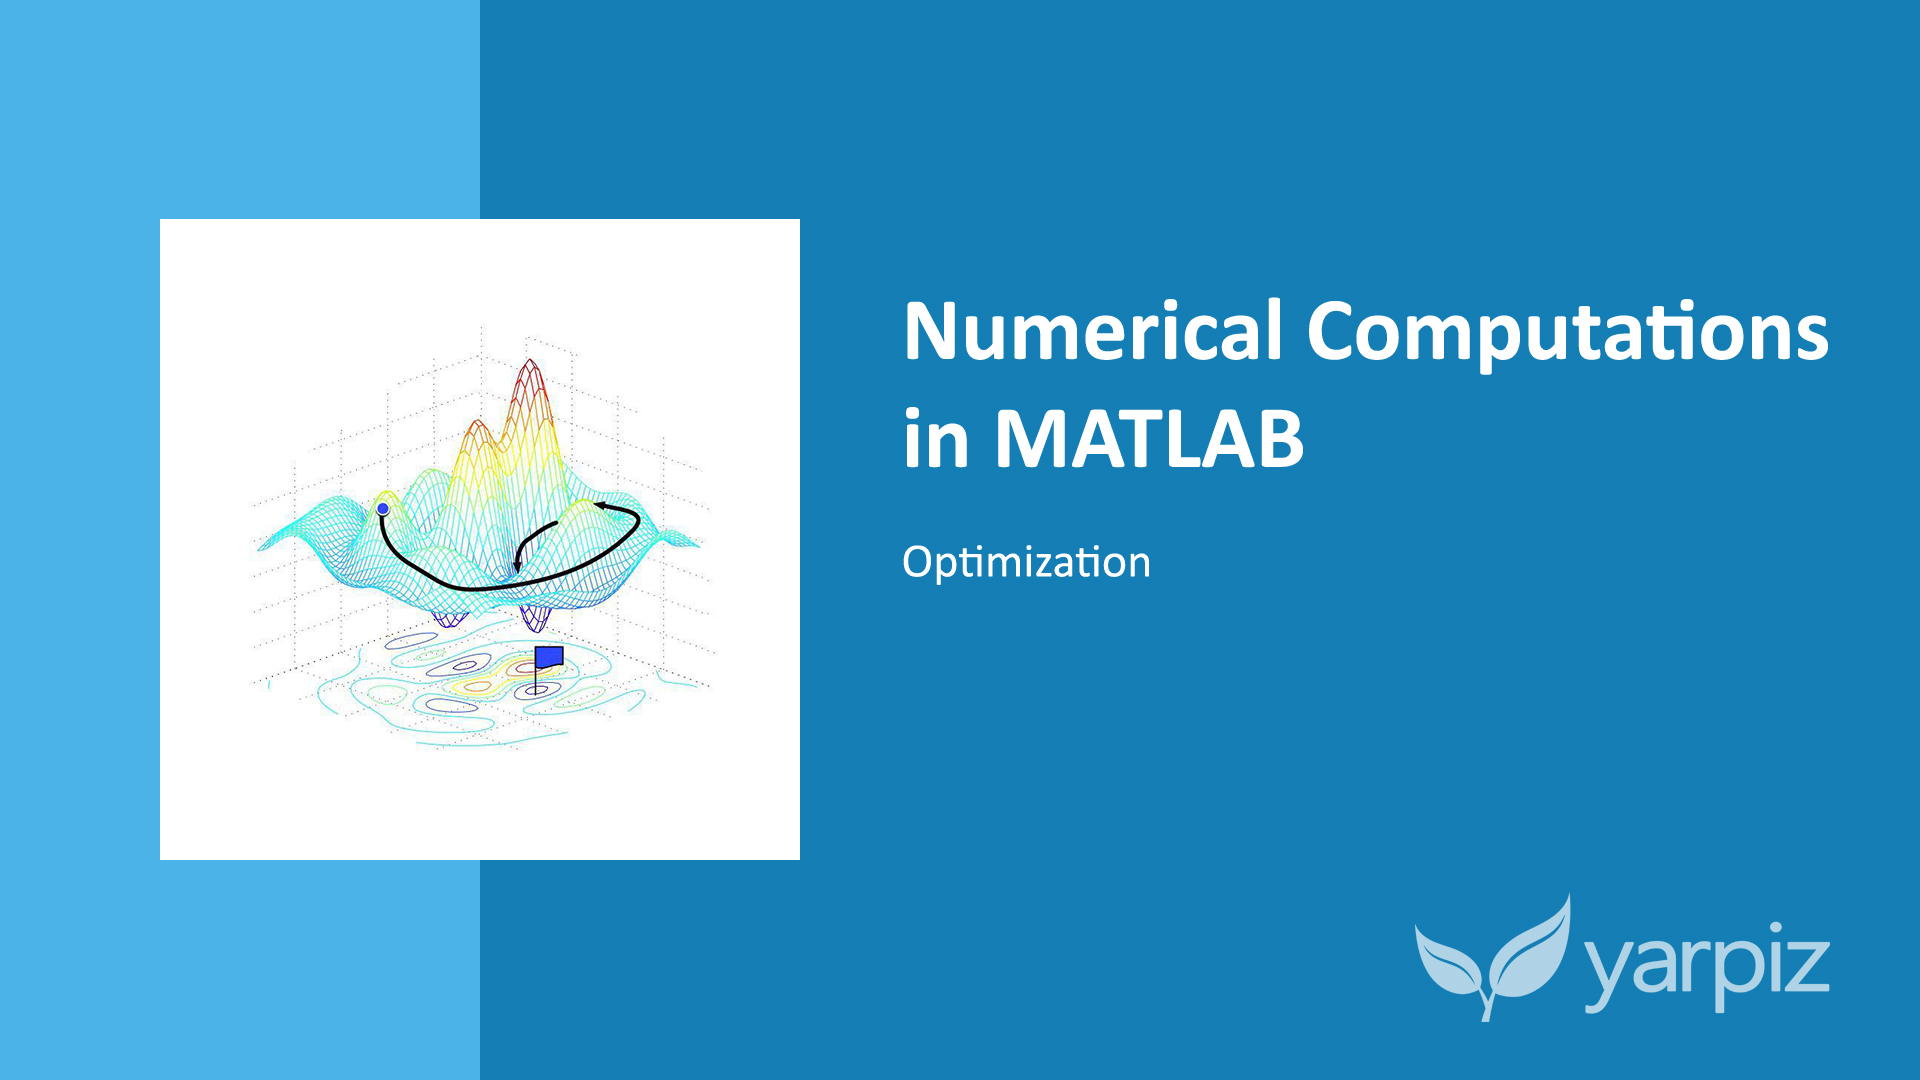 Numerical Computations in MATLAB: Optimization